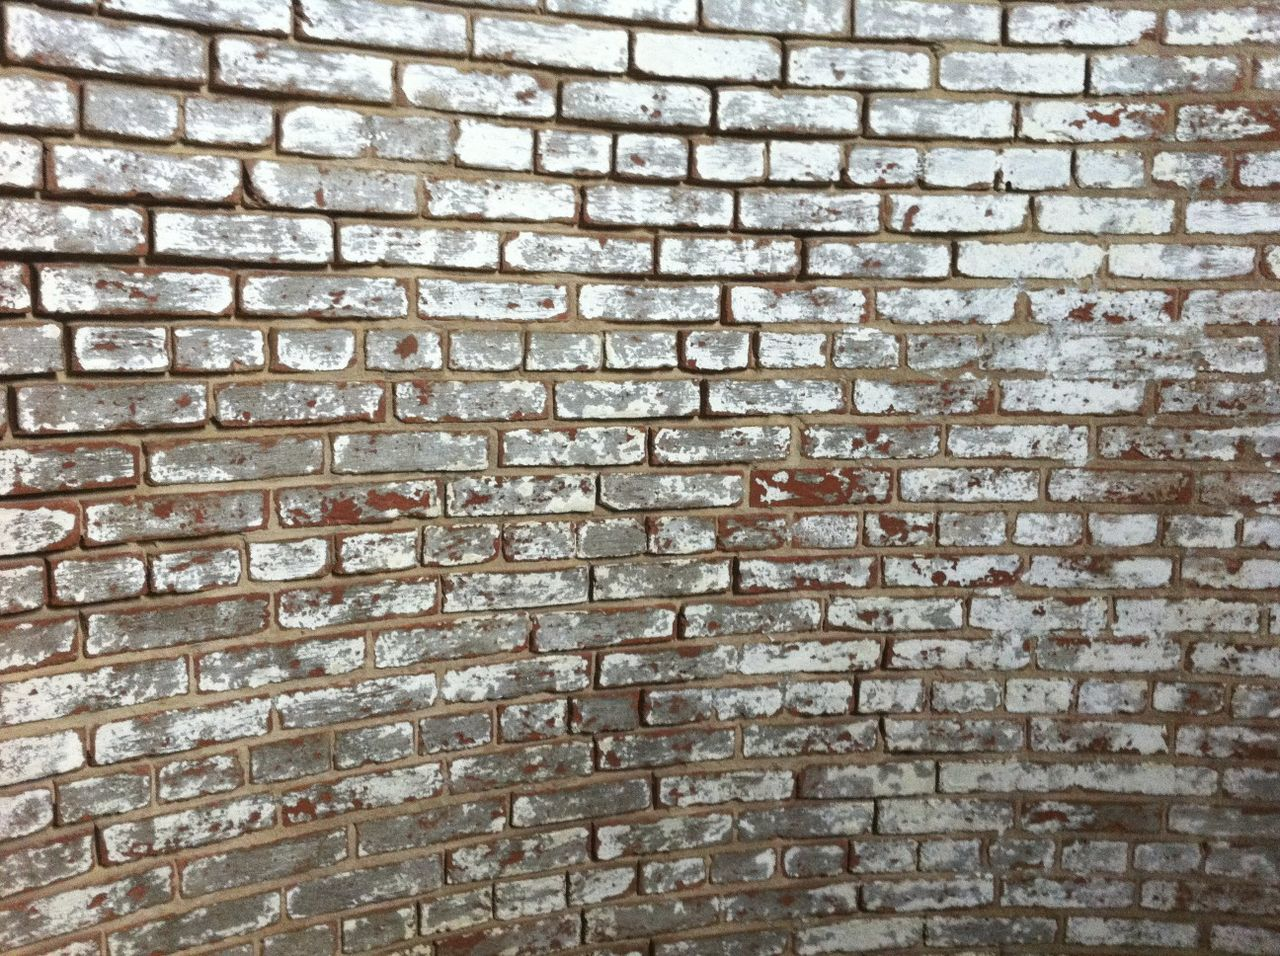 Abstract Arrangement Bad Condition Brick Wall Cobblestone Curved Wall Day Design Full Frame Geometry Grout Historic Lighthouse Wall No People Old Pattern Rectagular Shape Rectangles Red Brick Textured  Wall Wall - Building Feature White Washed